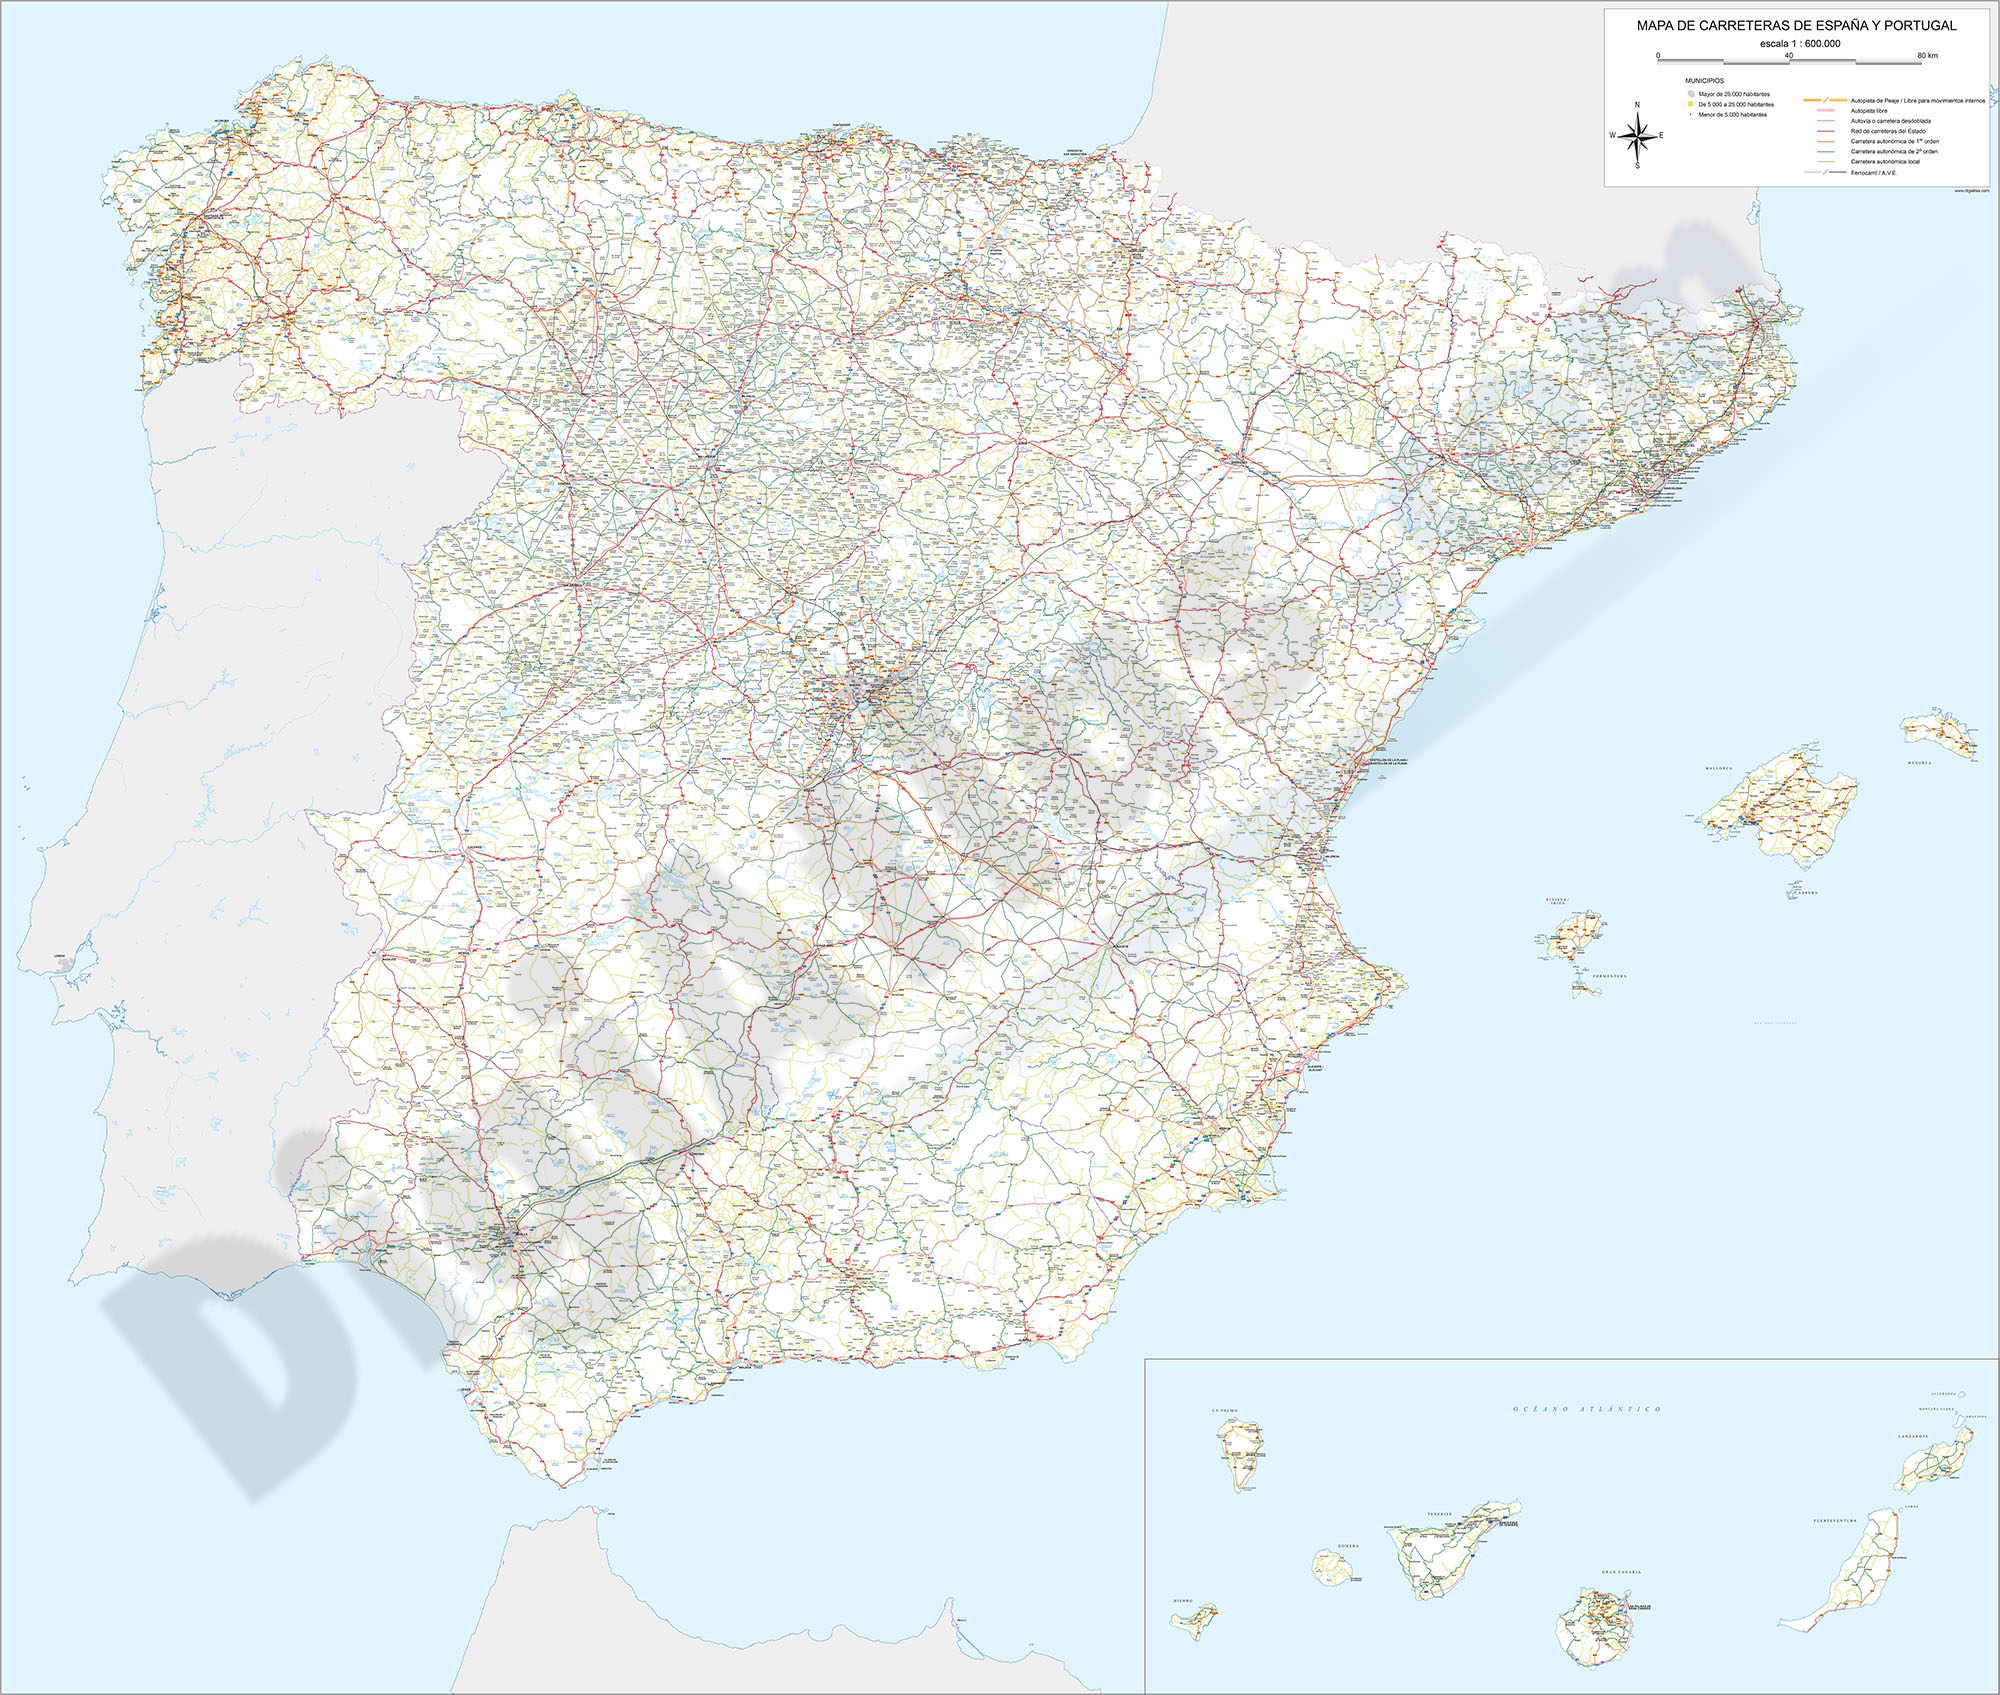 Detailed roads and cities map of Spain